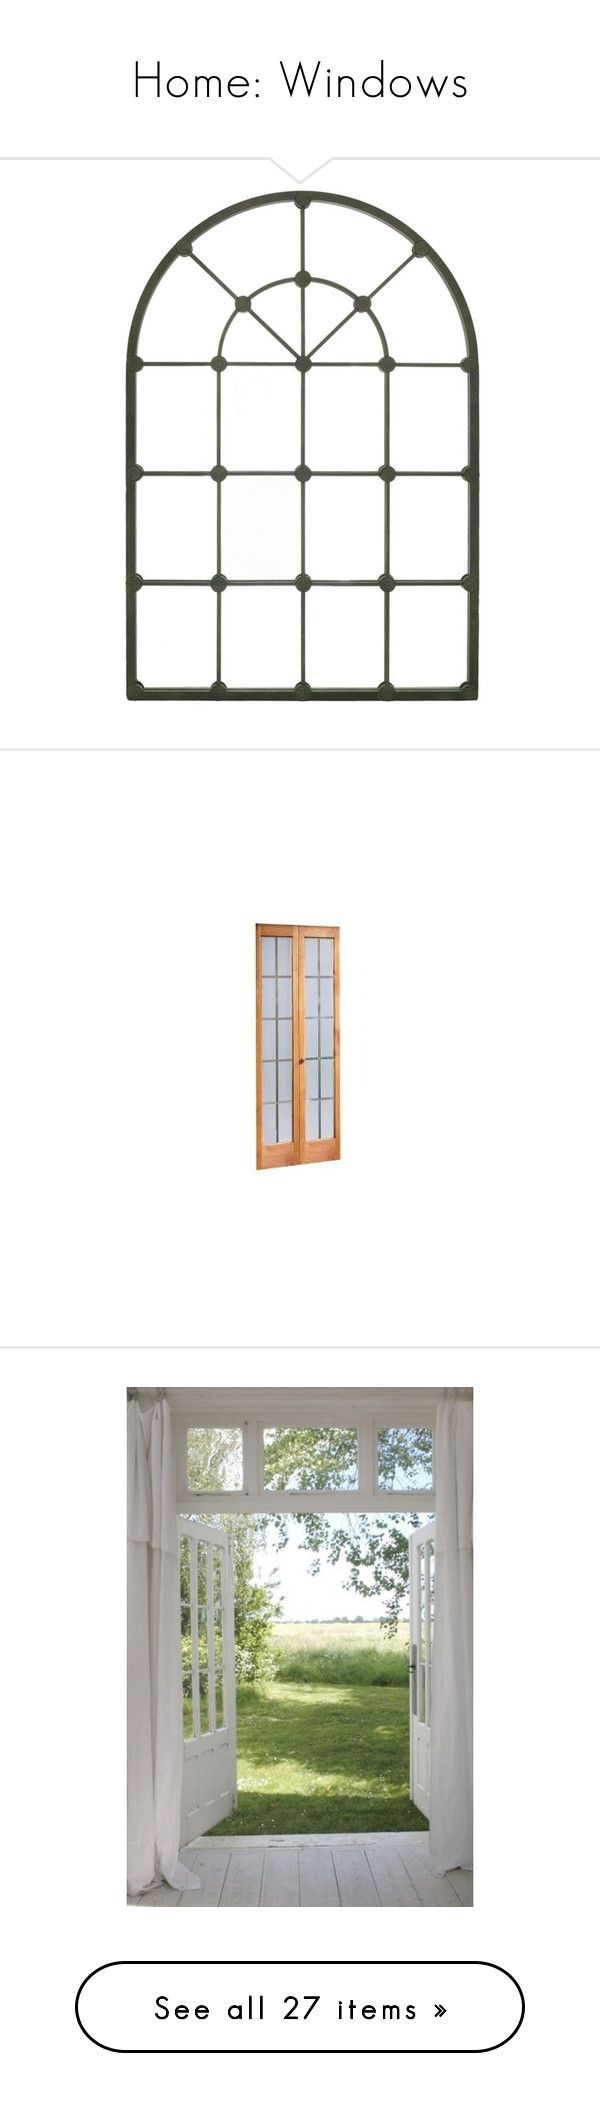 """Home: Windows"" by einsteinium21 ❤ liked on Polyvore featuring windows, home, home decor, mirrors, backgrounds, decor, borders, picture frame, rustic home decor and rustic window mirror"